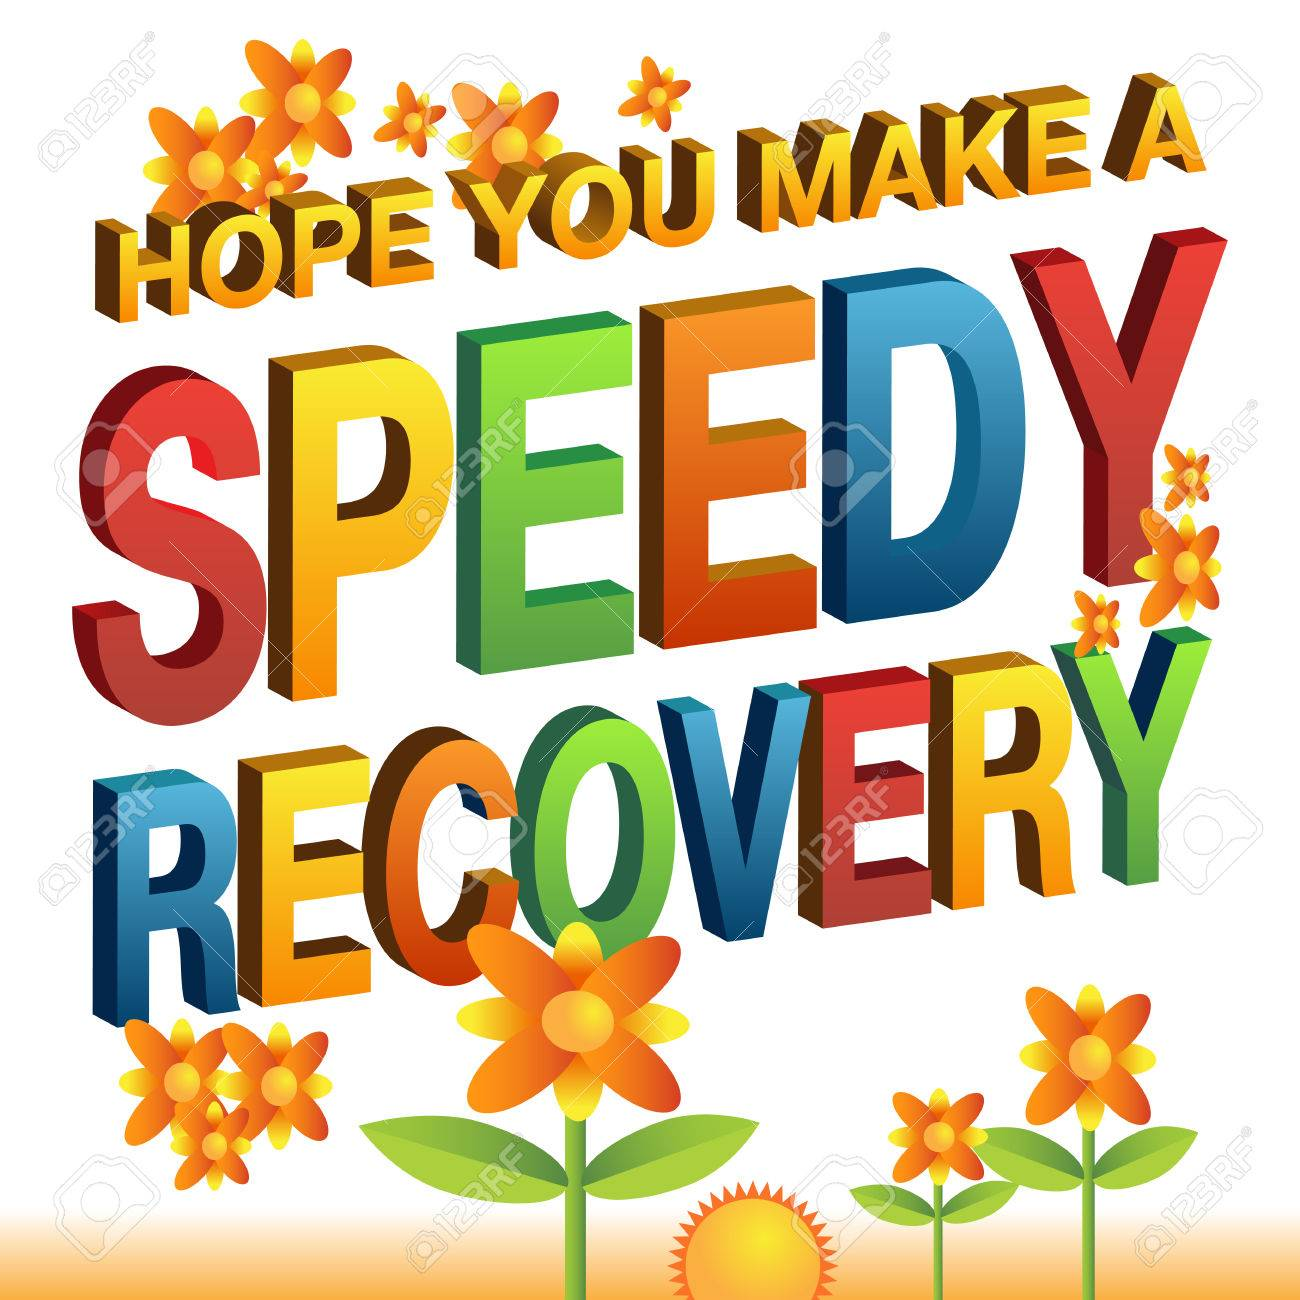 an image of a hope you make a speedy recovery message stock vector 56354813